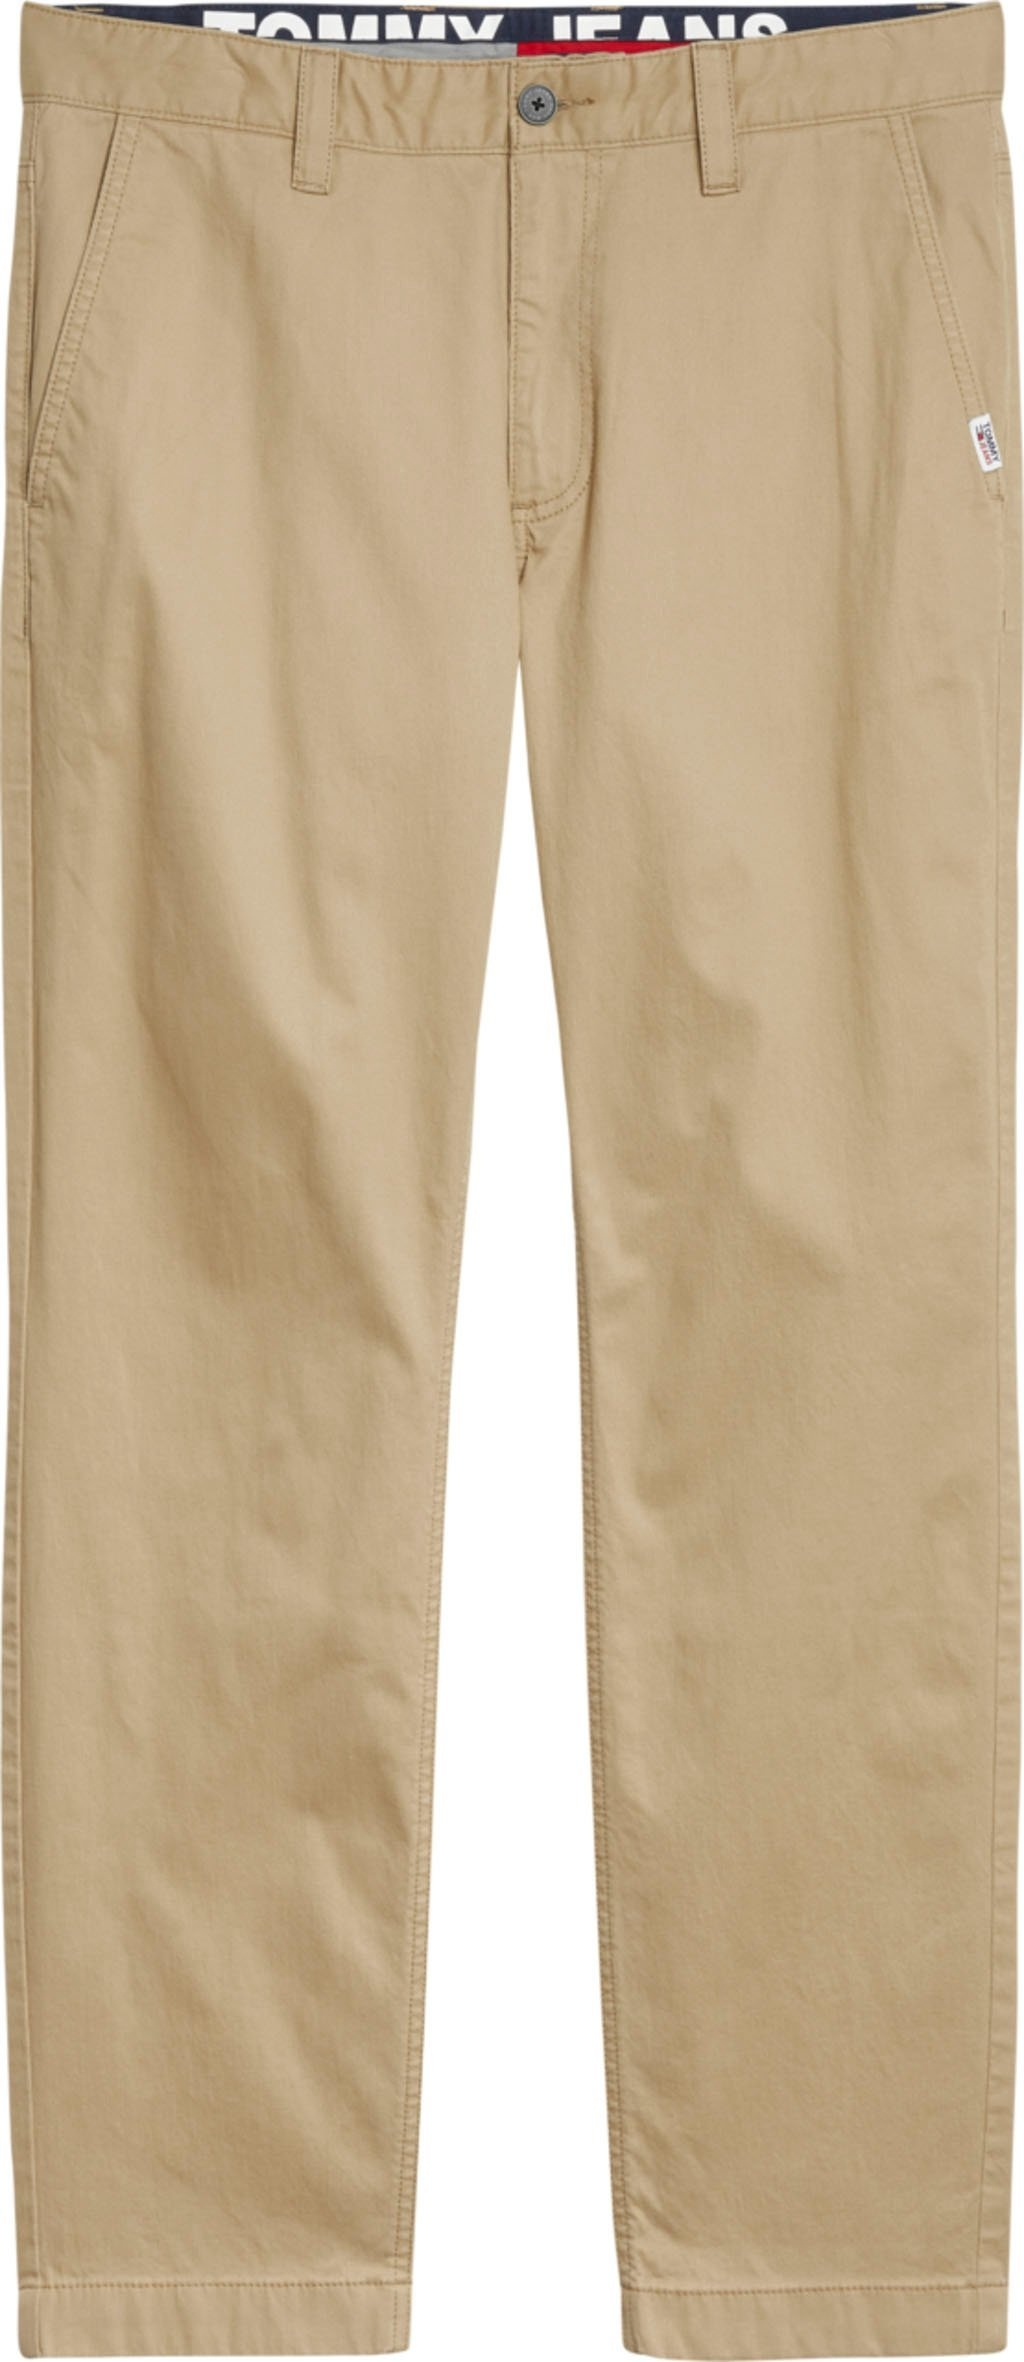 TOMMY JEANS chino TJM ETHAN CHINO PANT nu online kopen bij OTTO